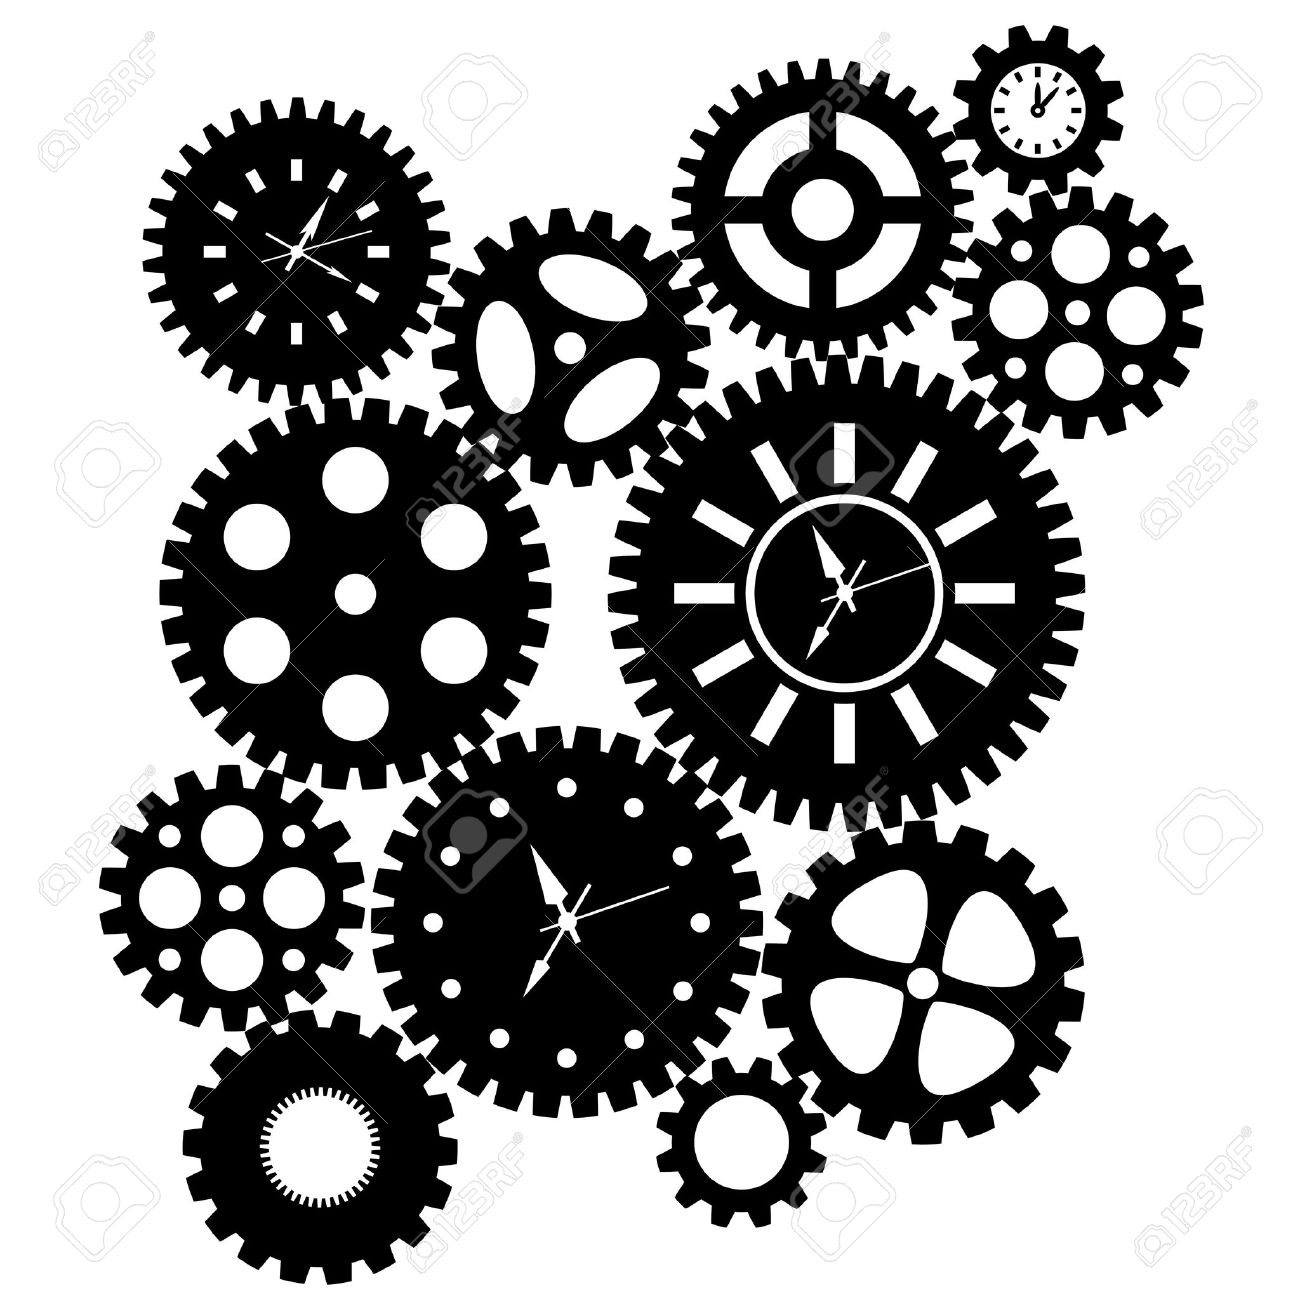 Mechanism clipart.